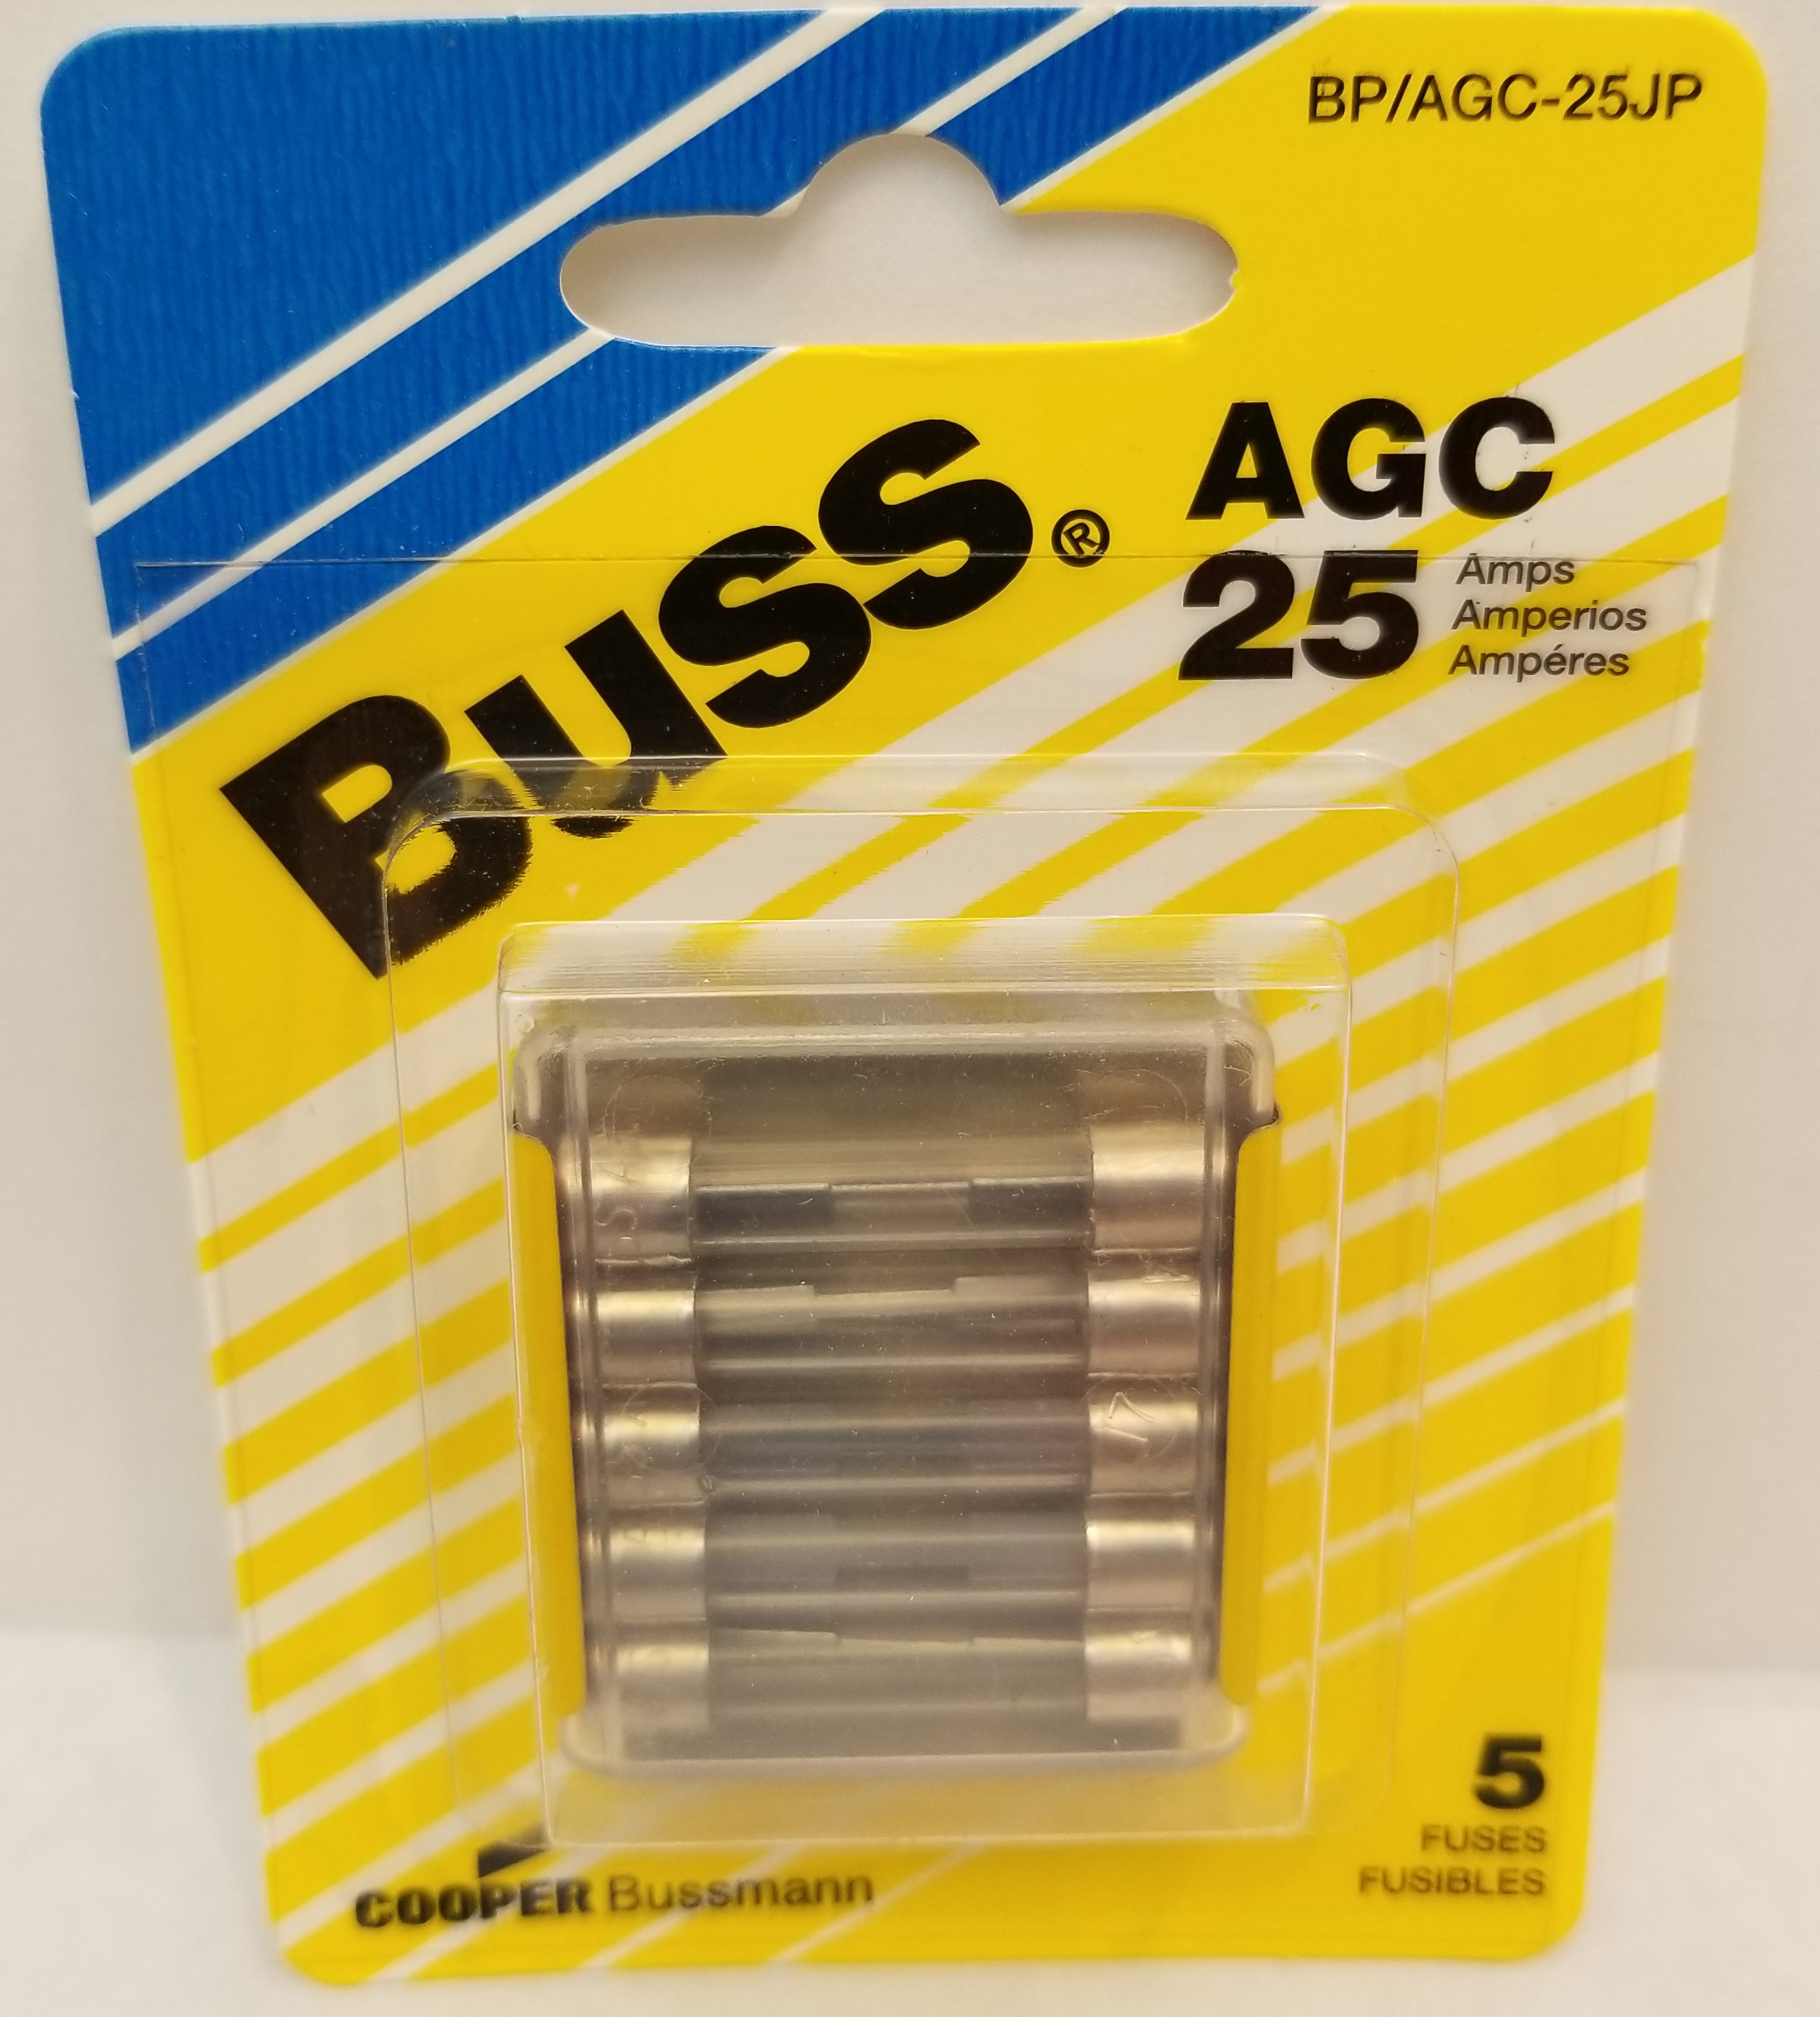 GERMAN CAR GLASS FUSE ASST.